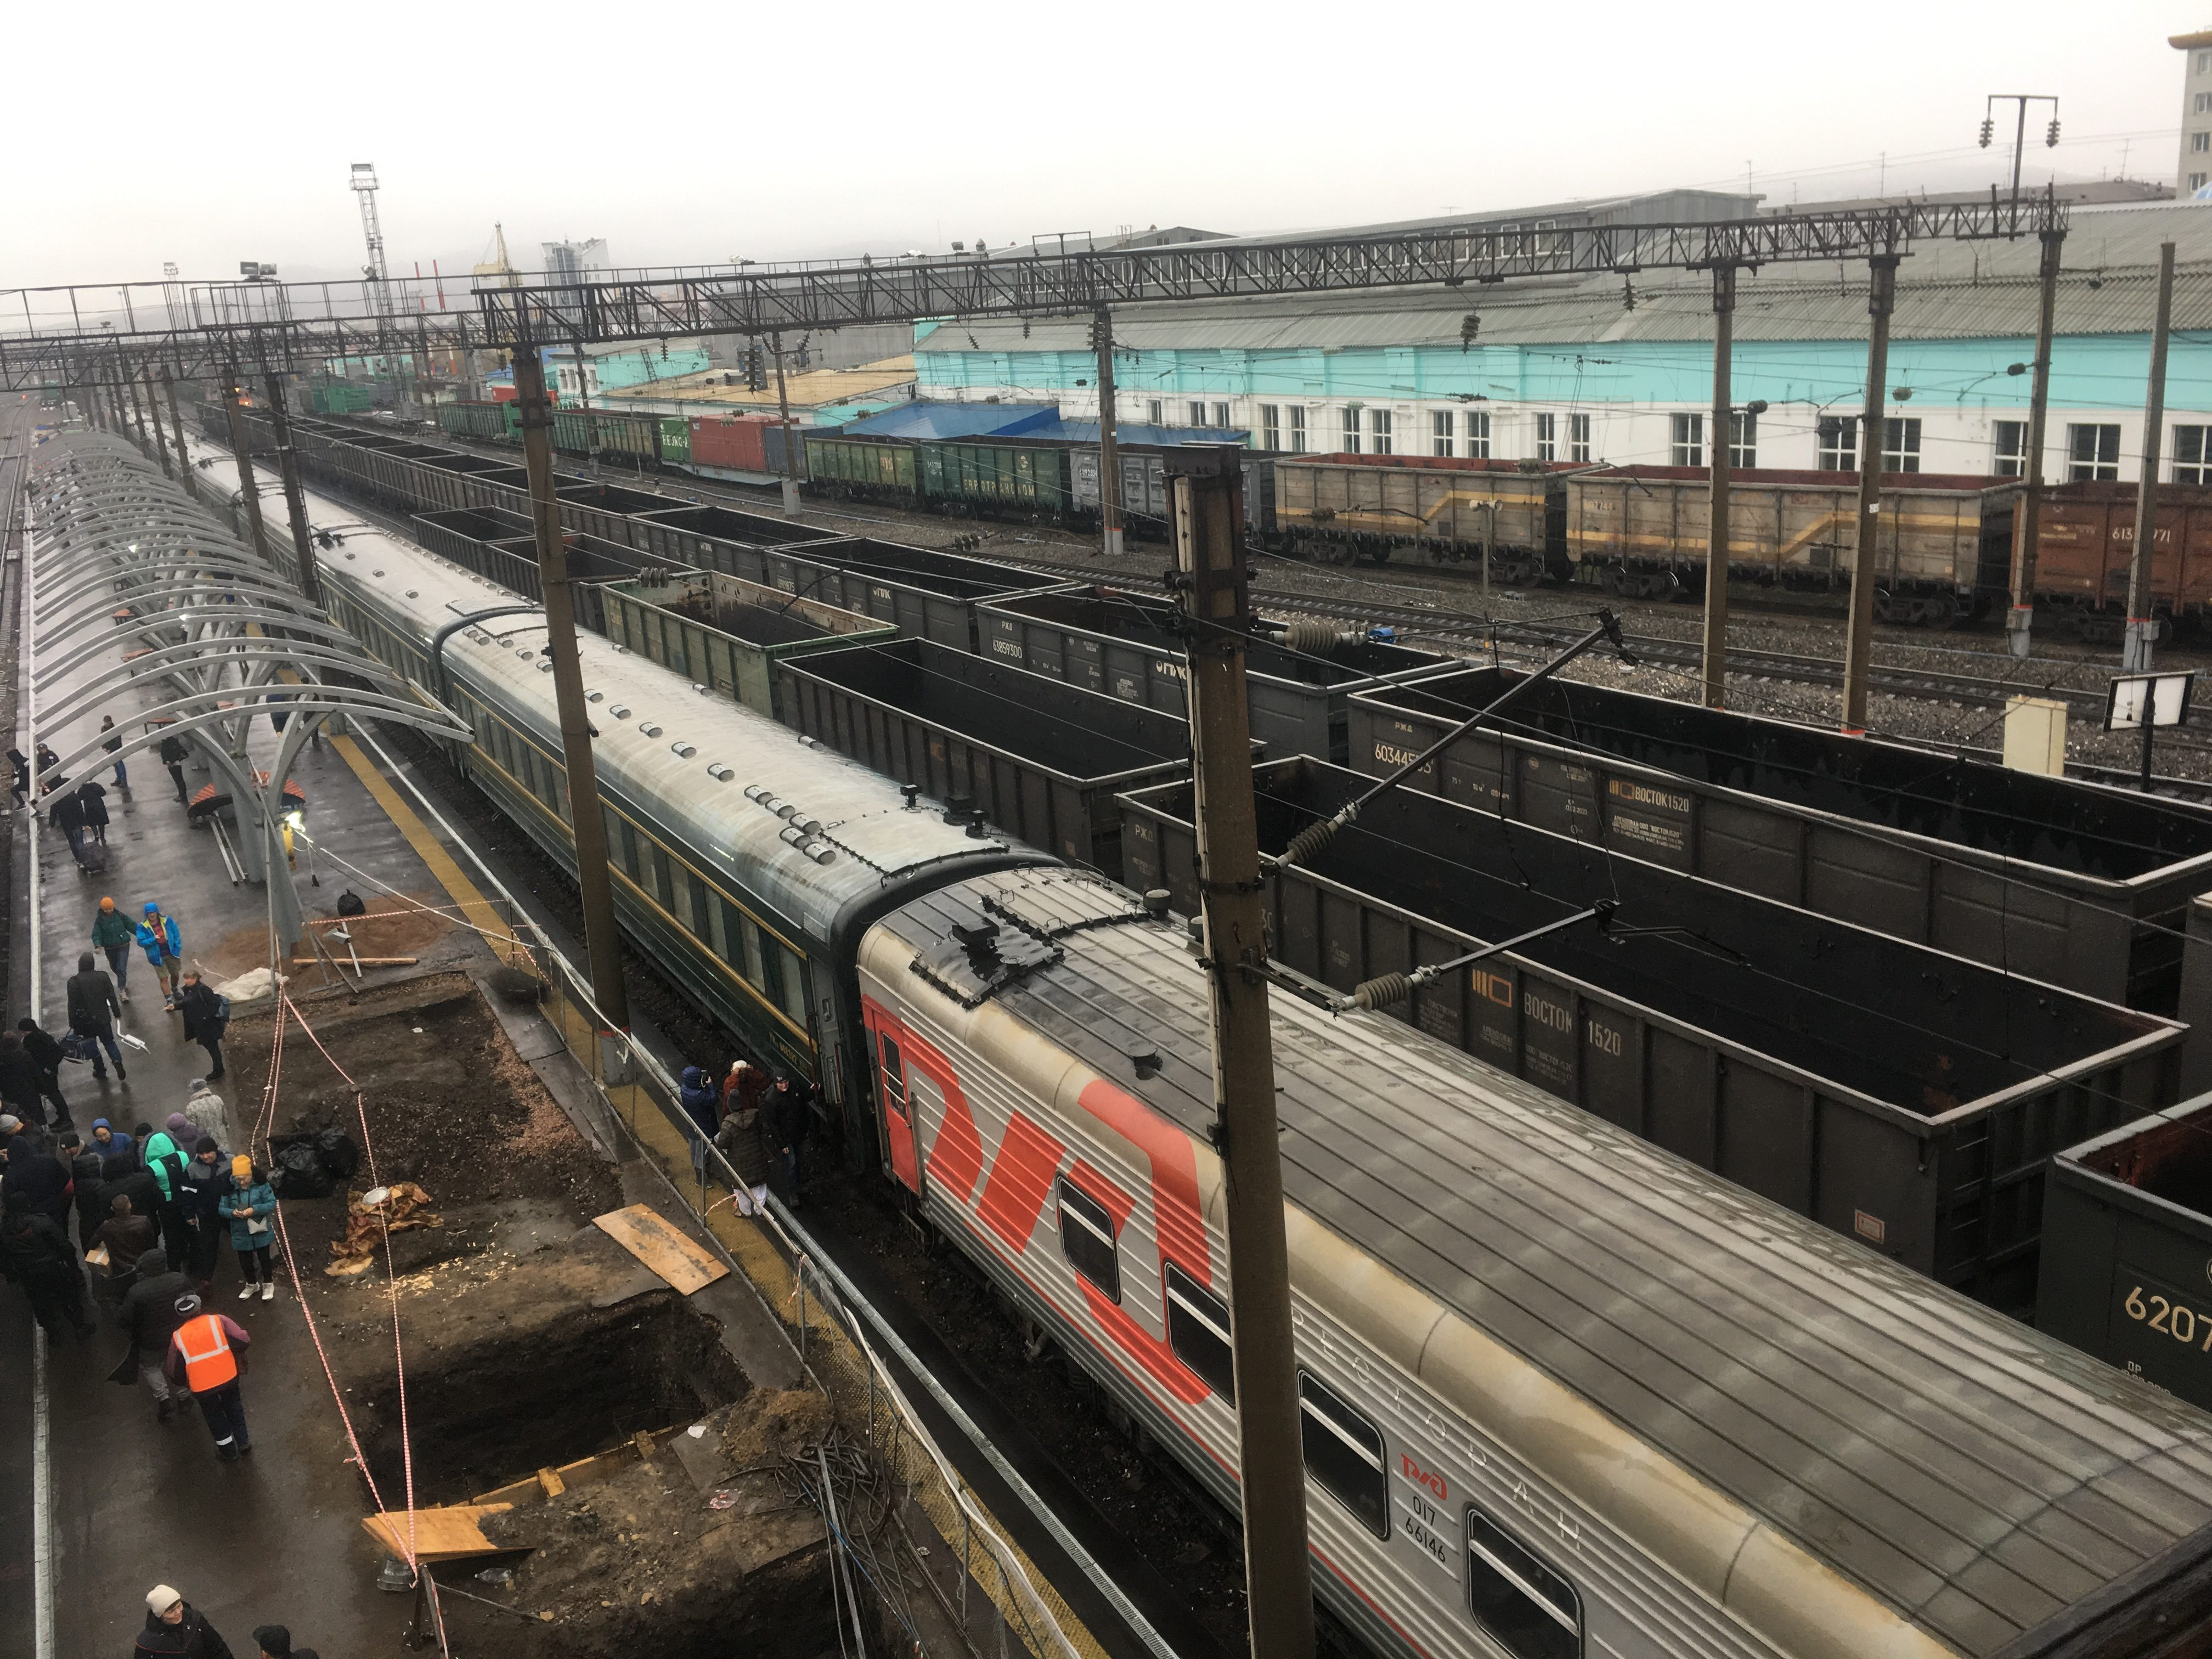 Our train parked at Ulan-Ude station